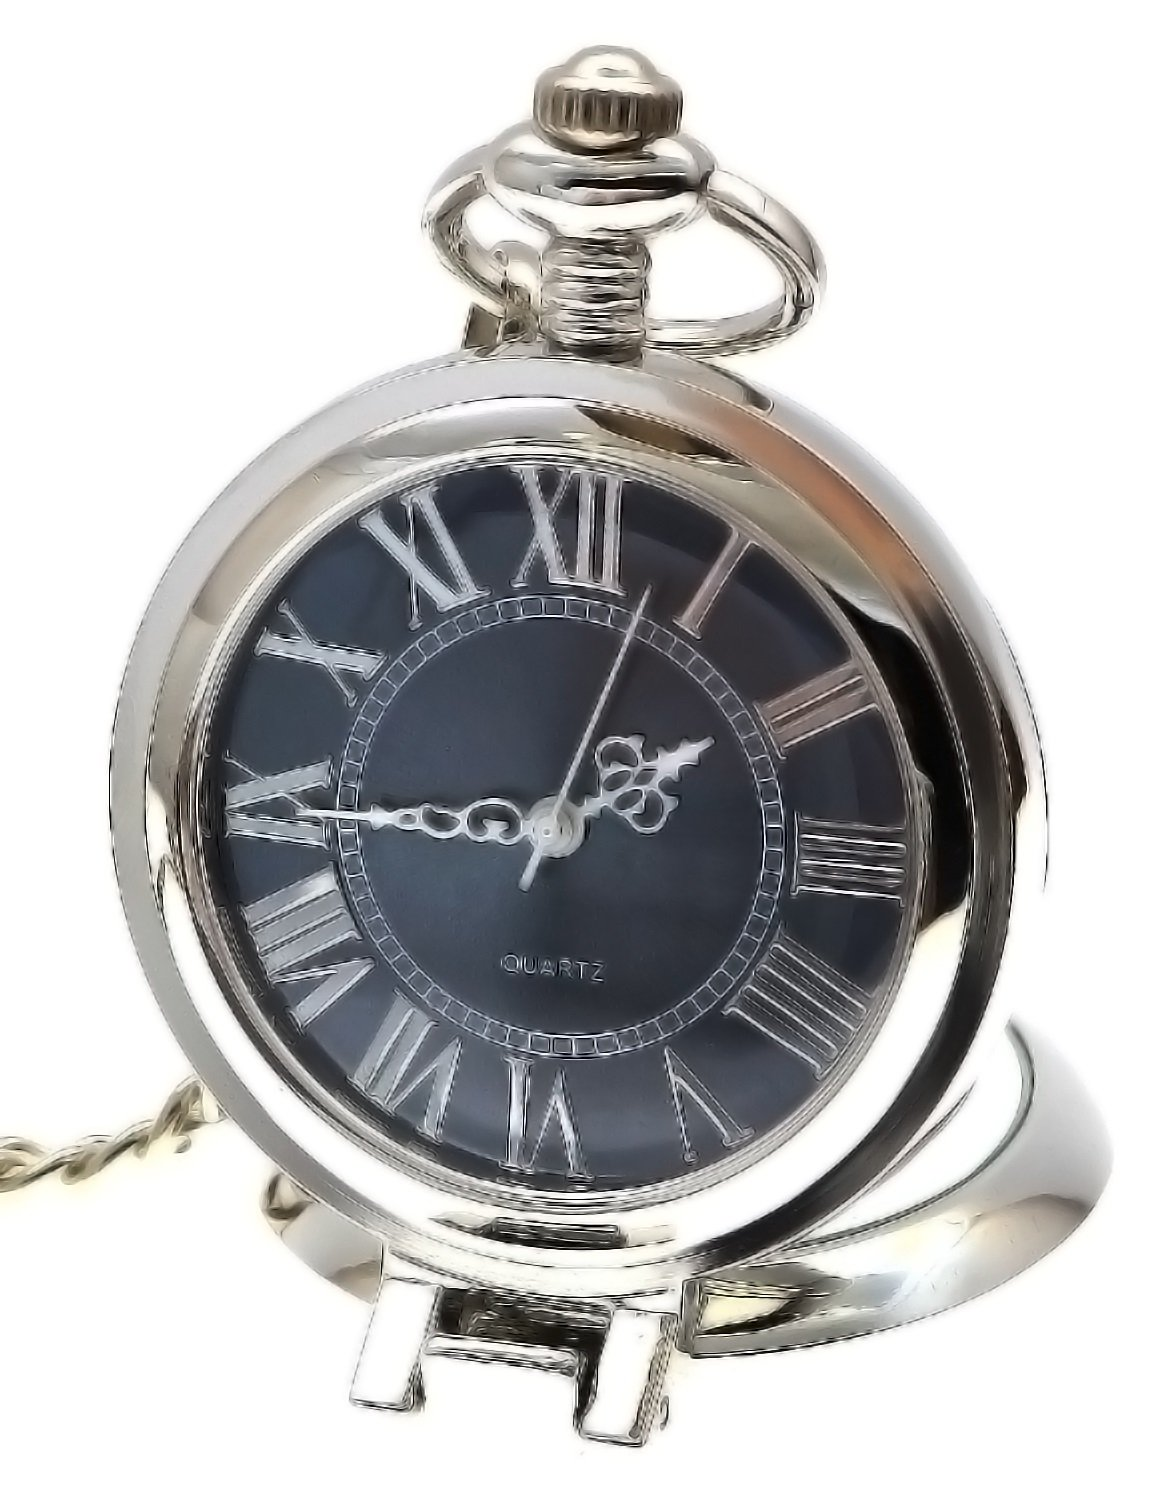 Vintage Magnifier Roman Numerals Display Design Case for Quartz Pocket Watch with Chain